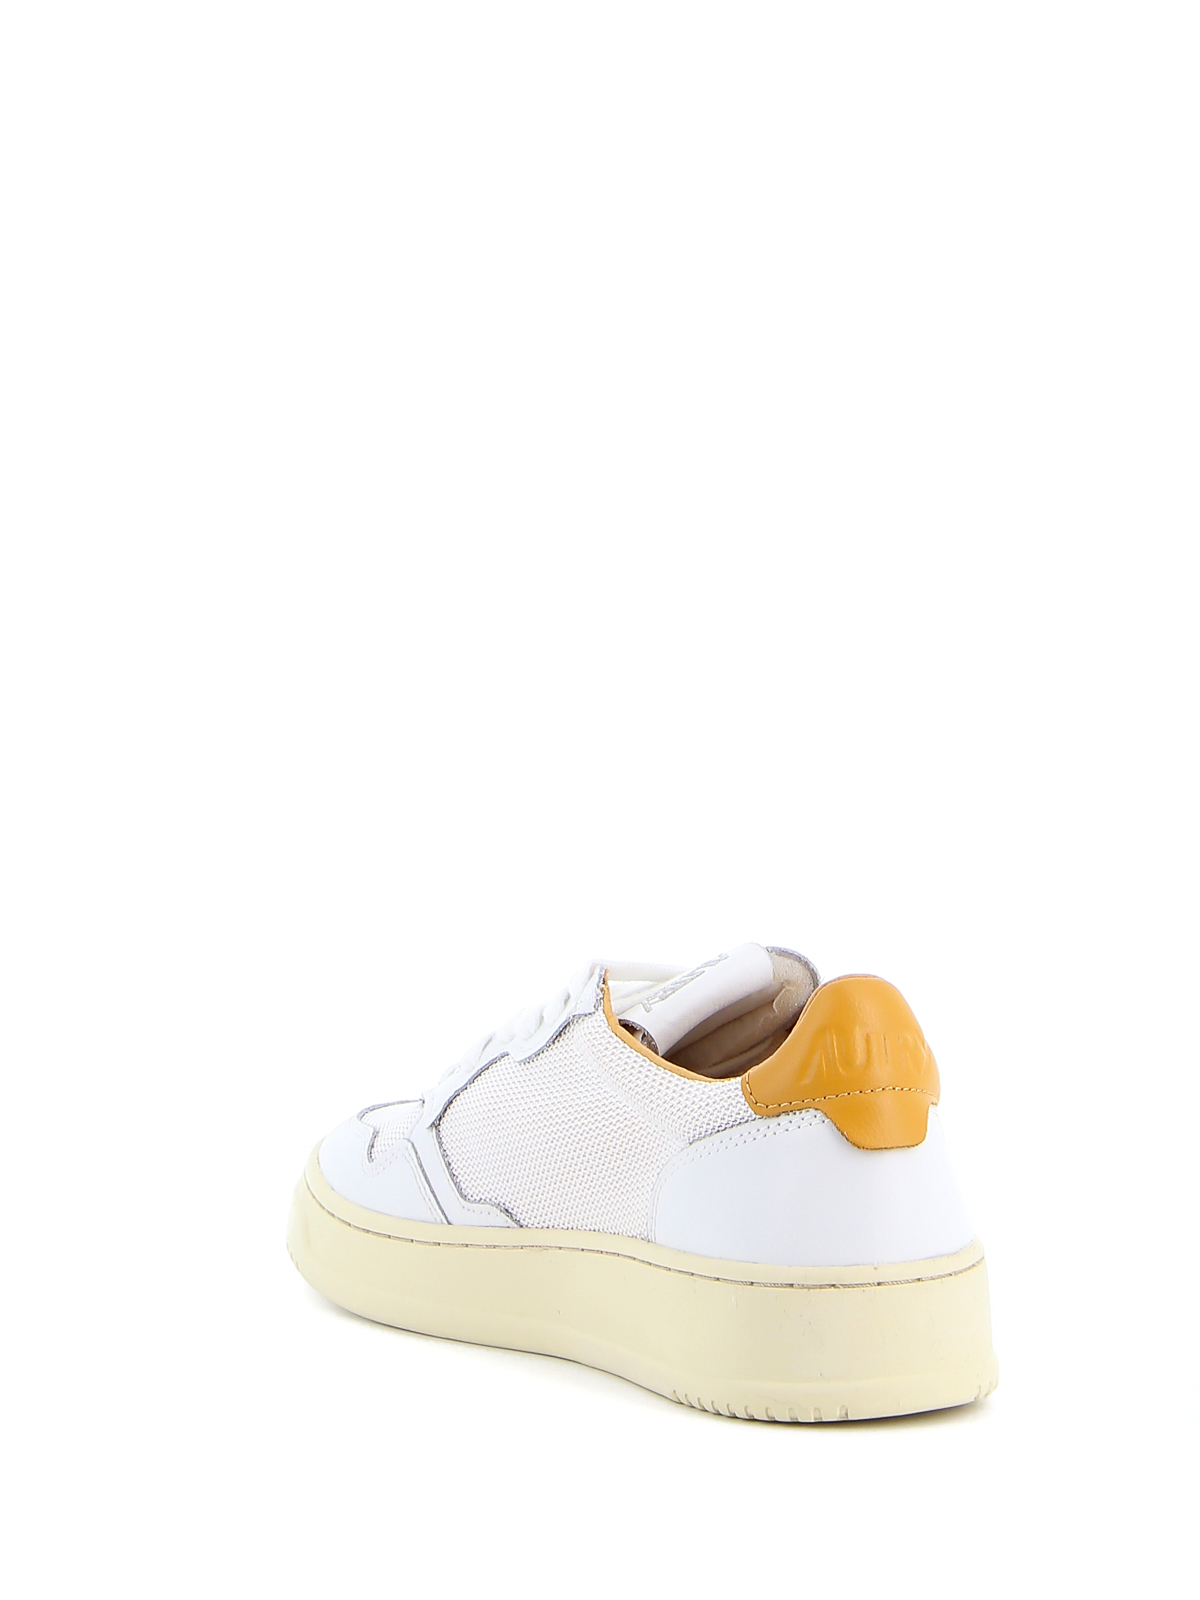 Immagine di Autry | Sneakers Leather Nylon